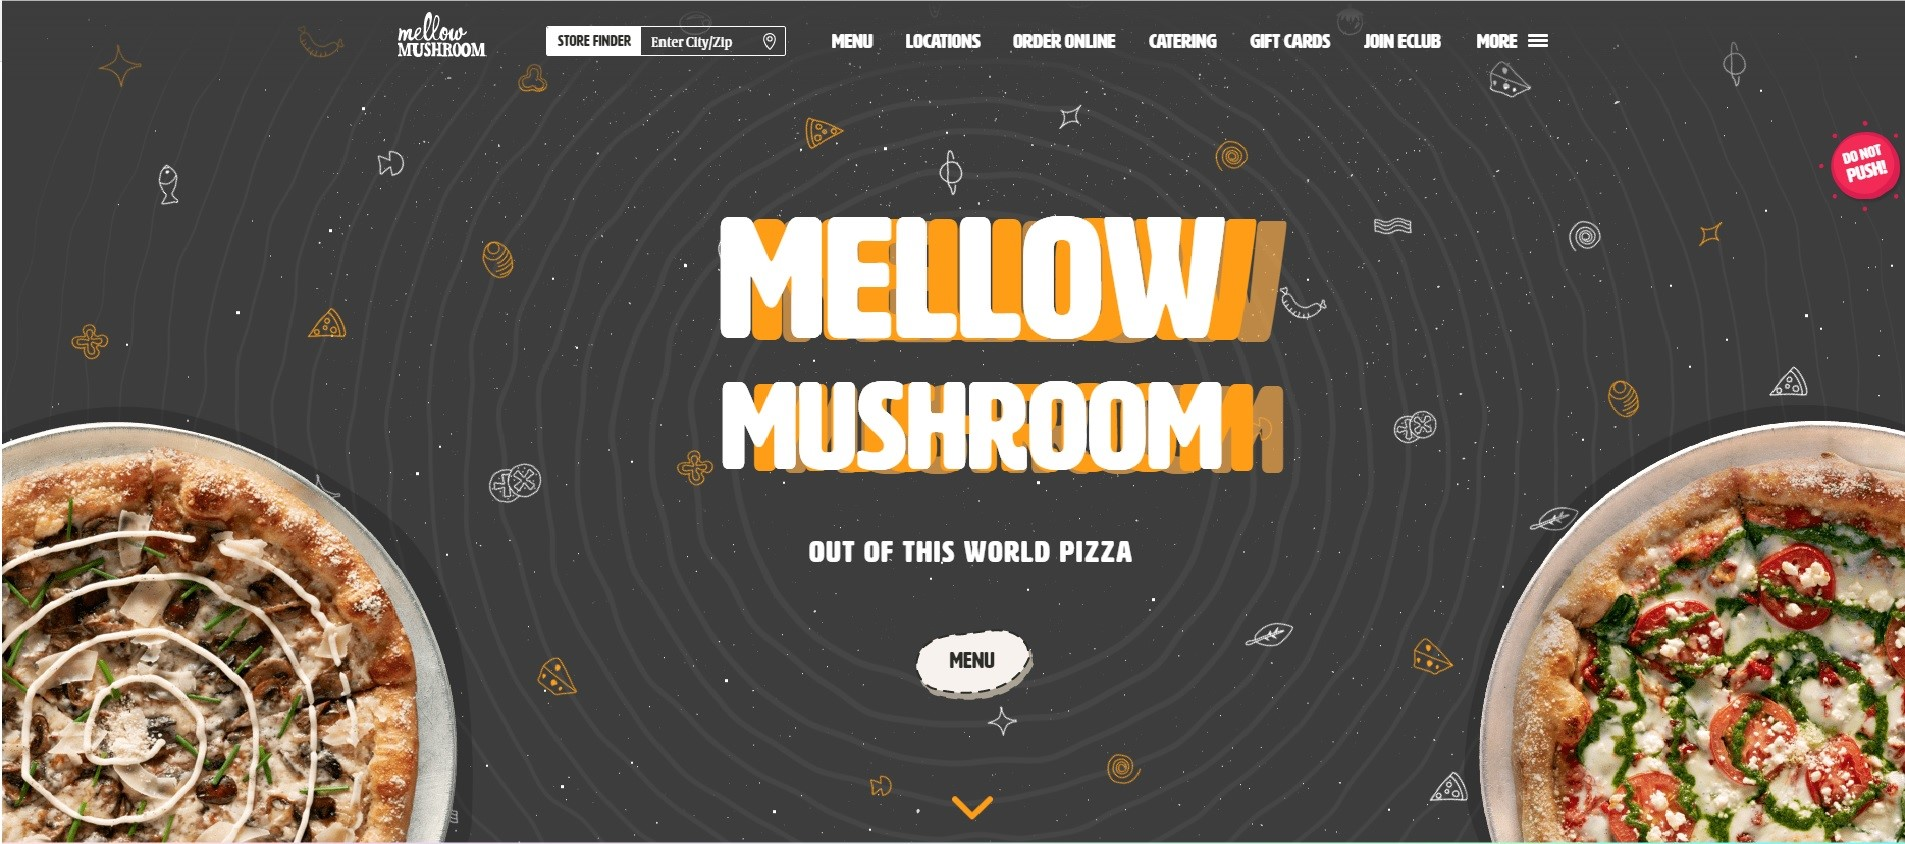 Landing page for Mellow Mushroom